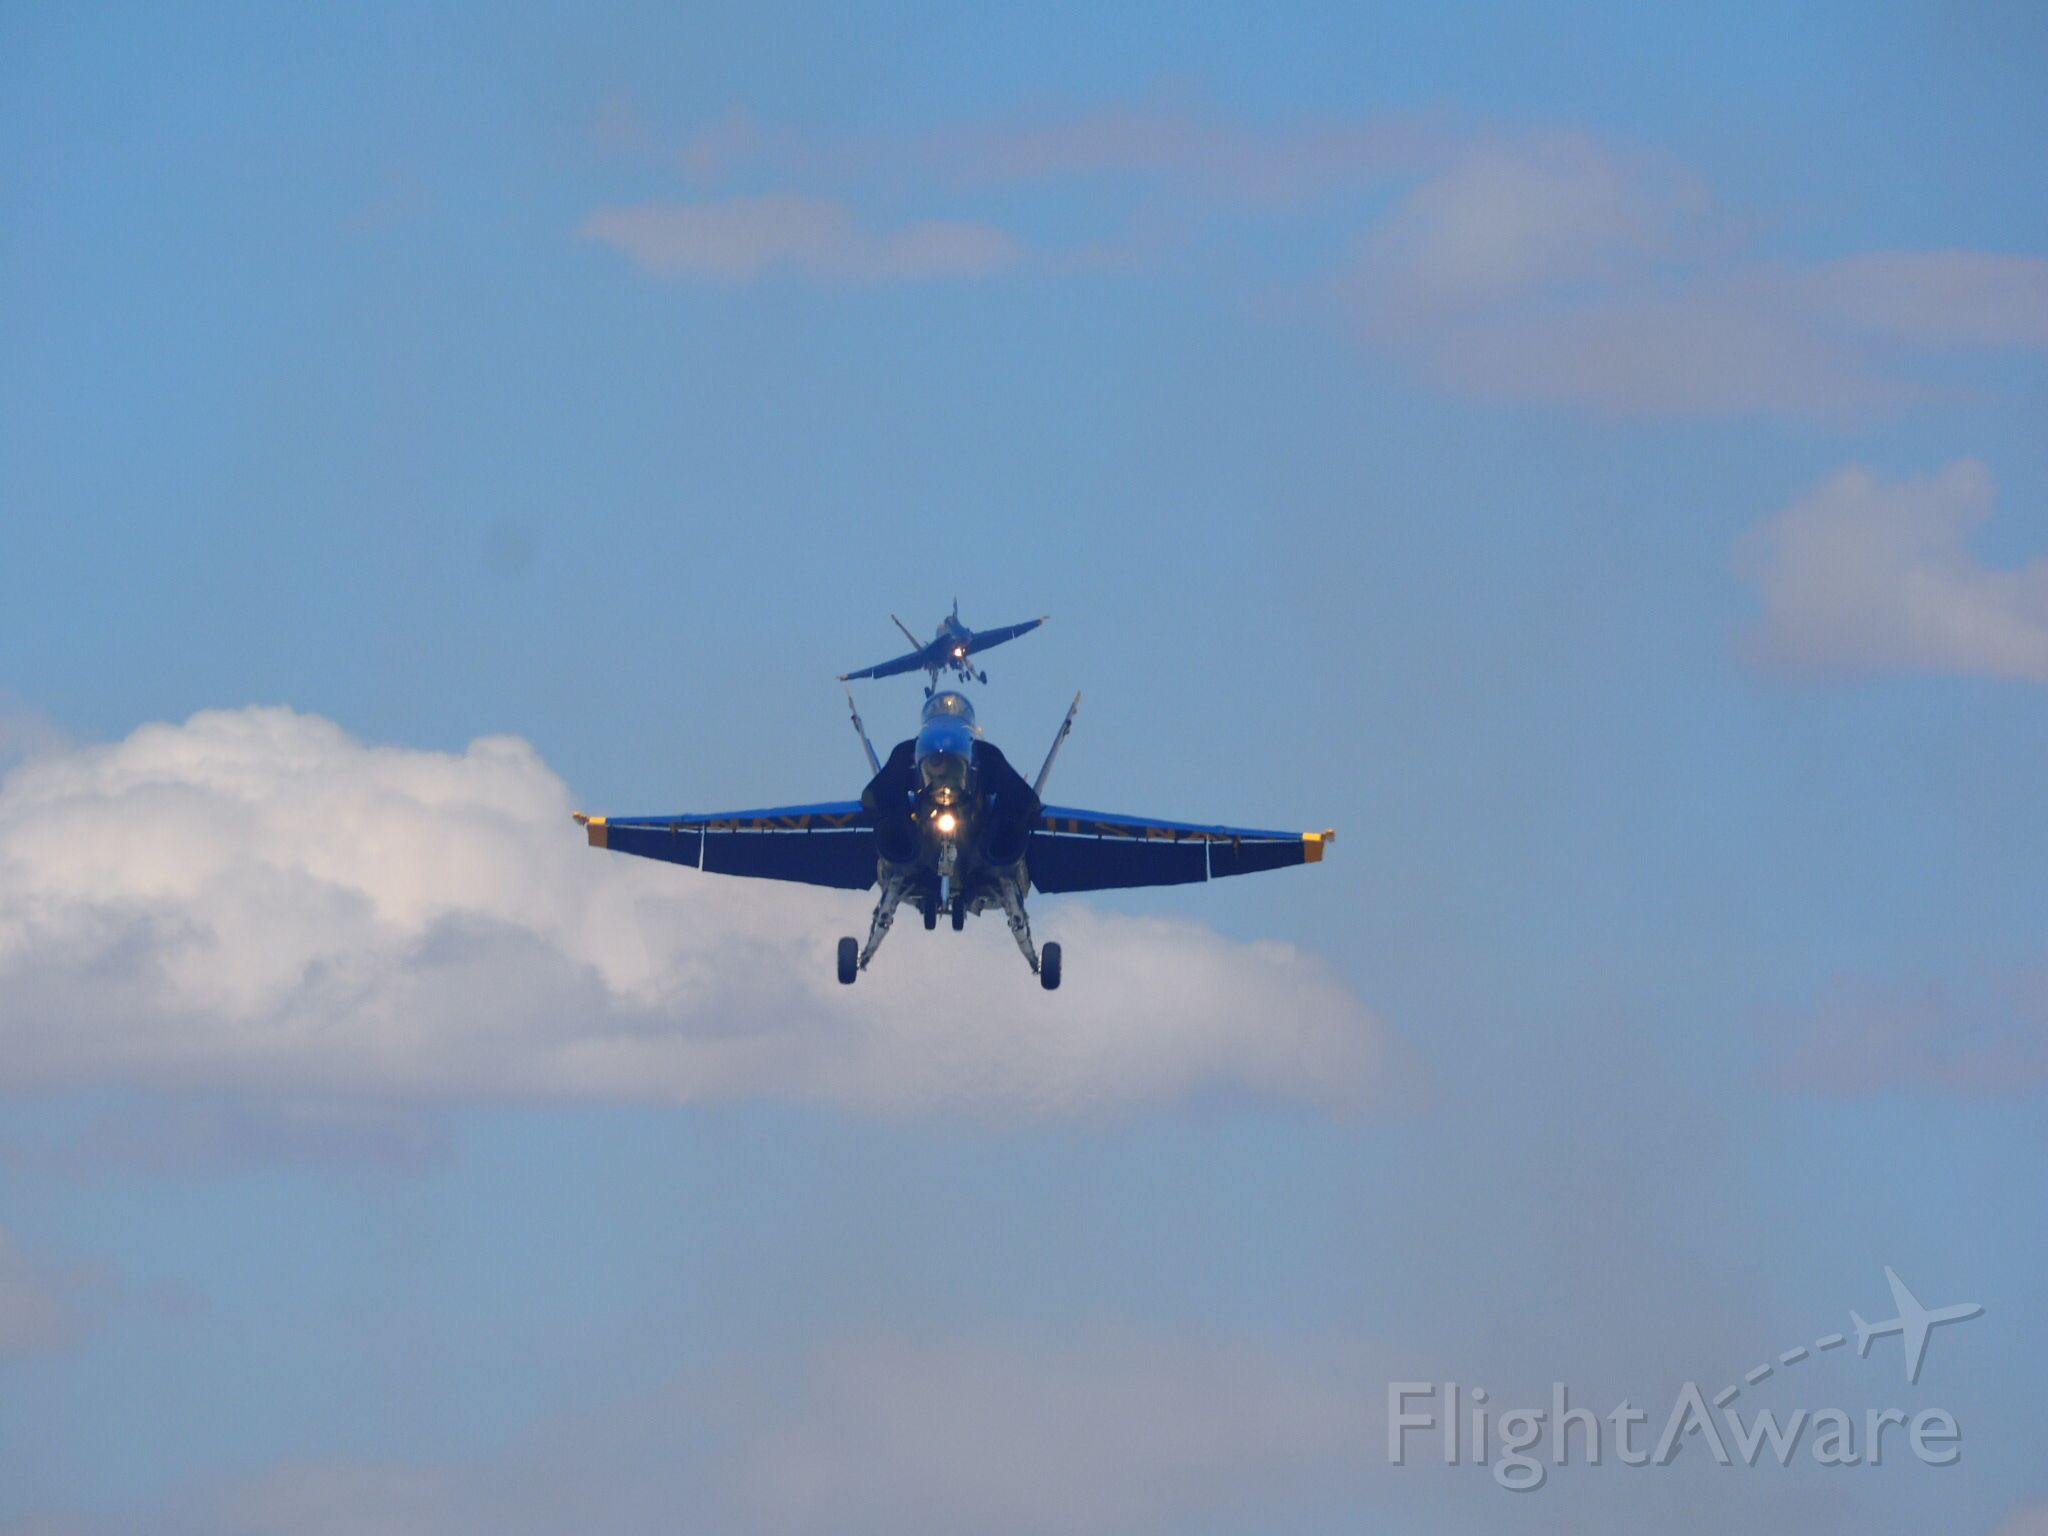 — — - At Luke AFB March 15 2017. North end of the Runway.  Two days before Luke Air Force day.  Lo and behold here comes the Blue Angels in.  What a great day.